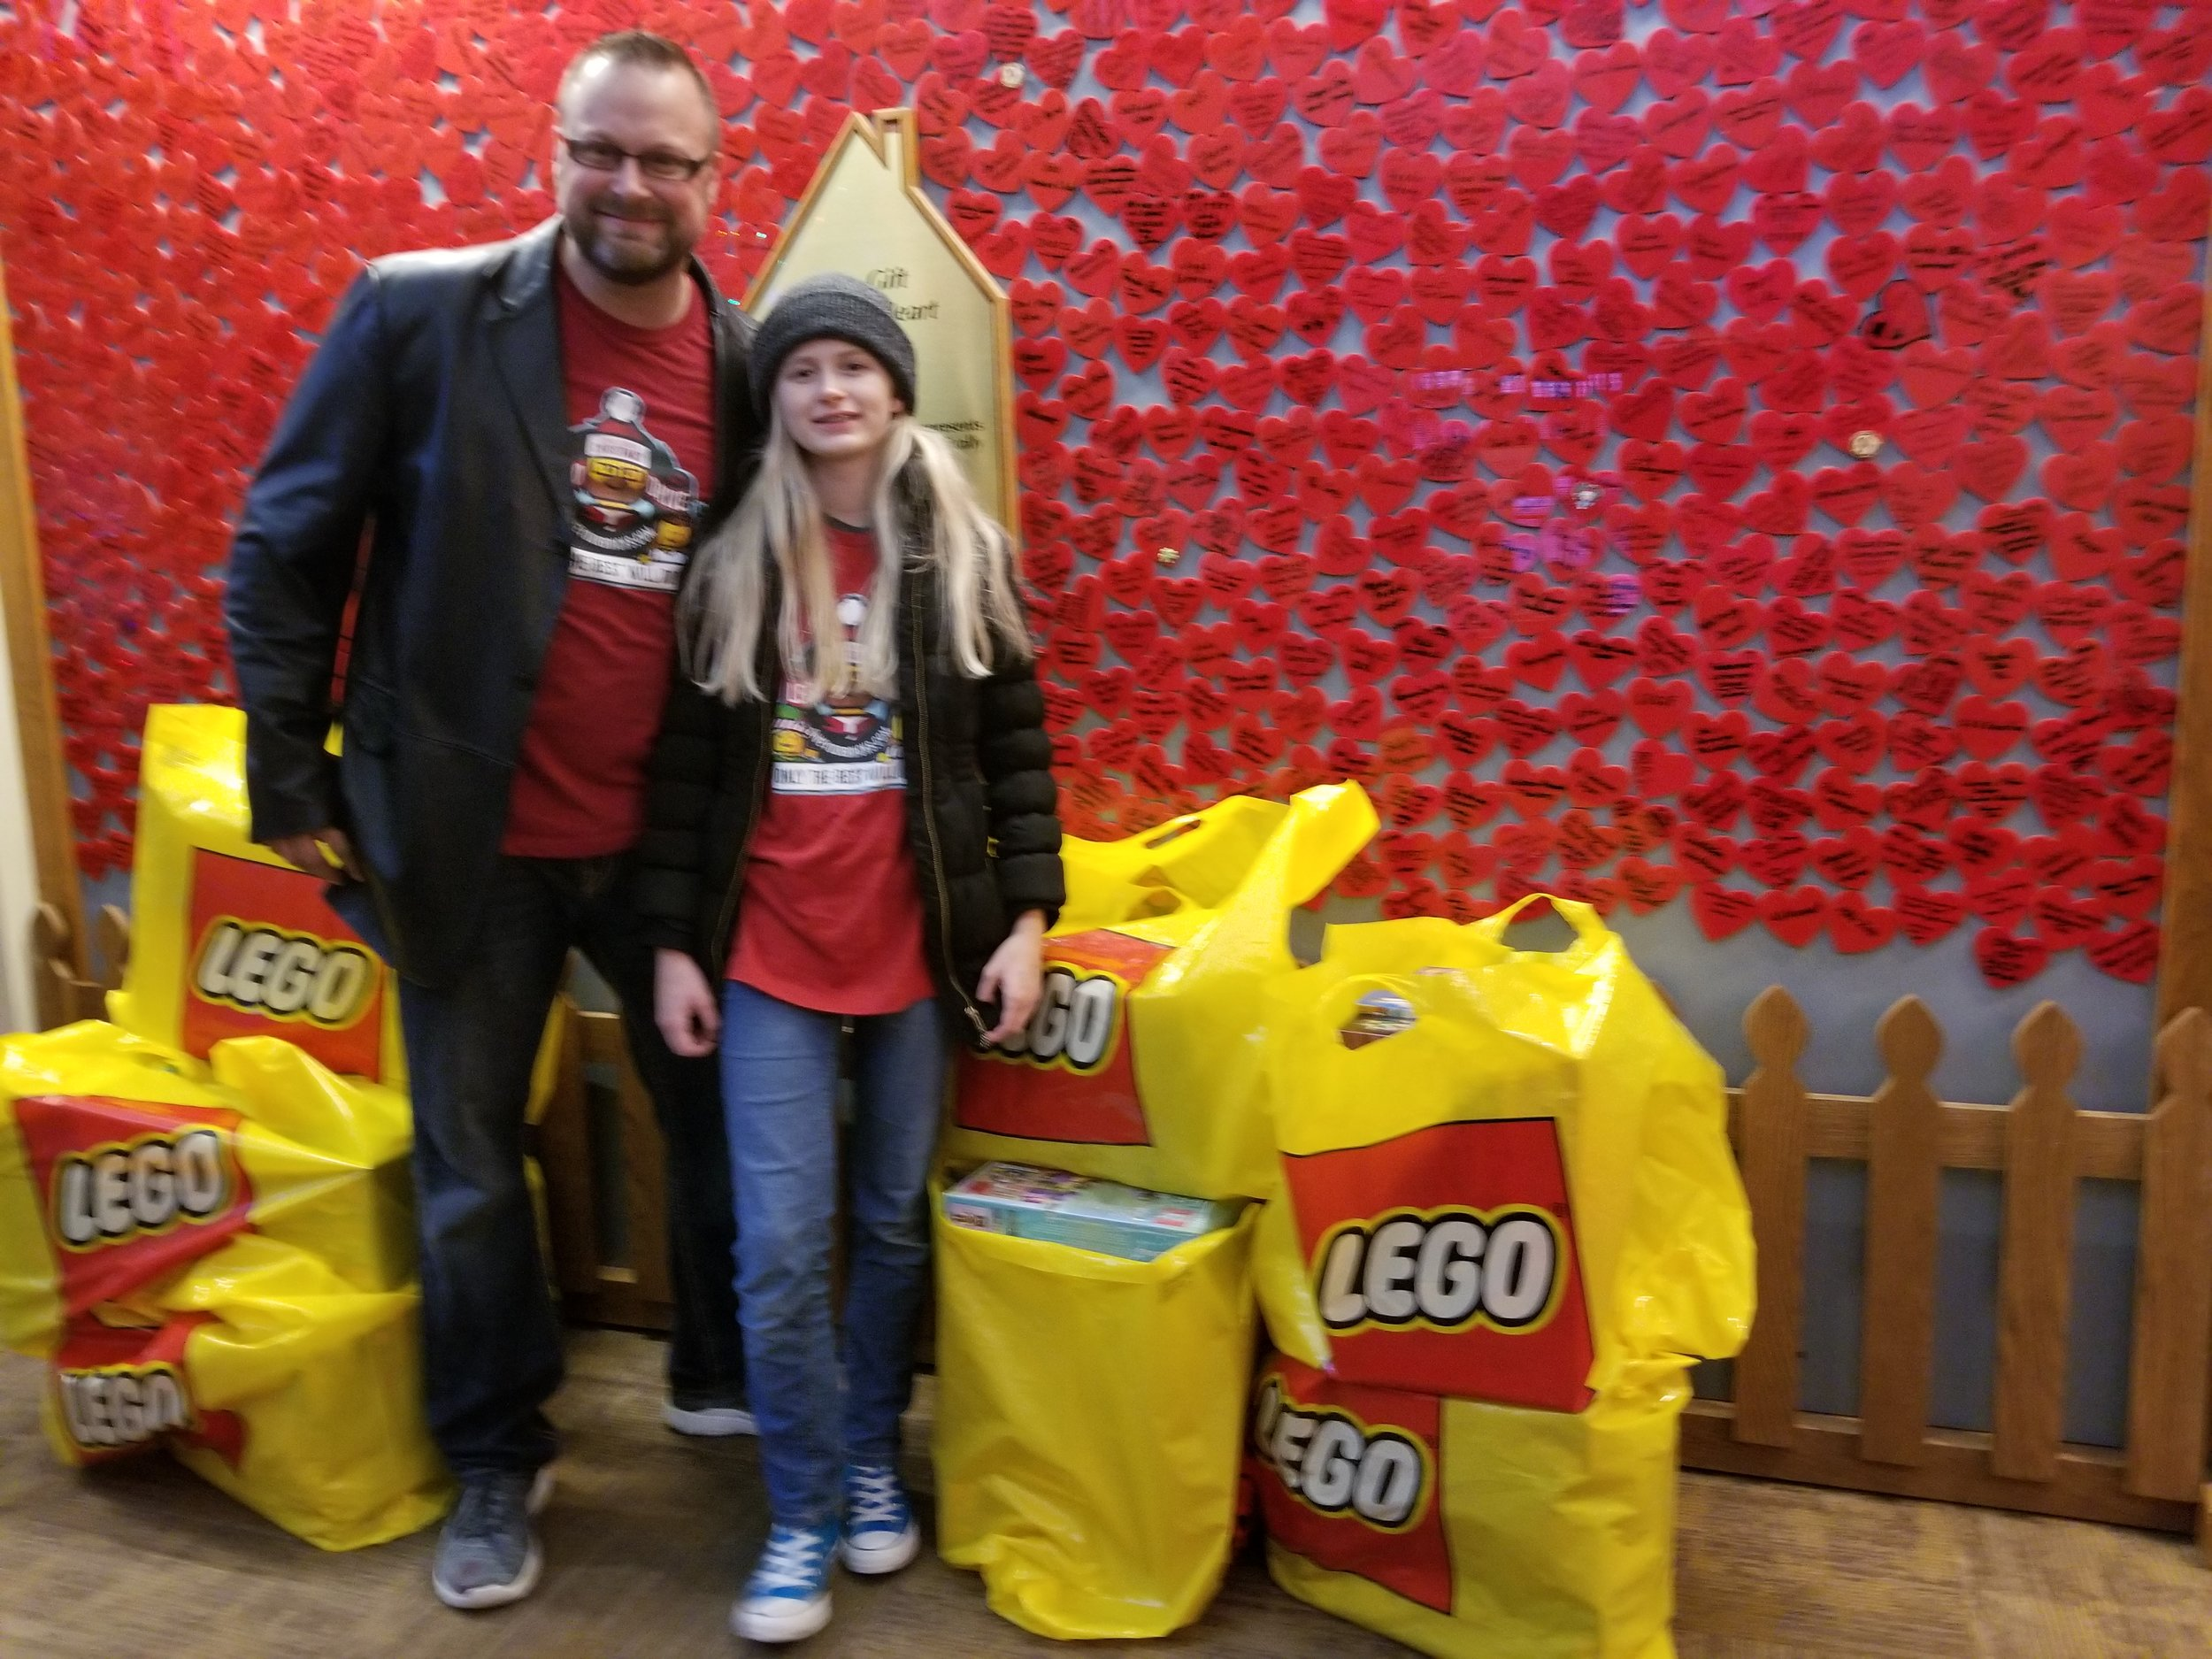 Dropping off LEGO at the Ronald McDonald House